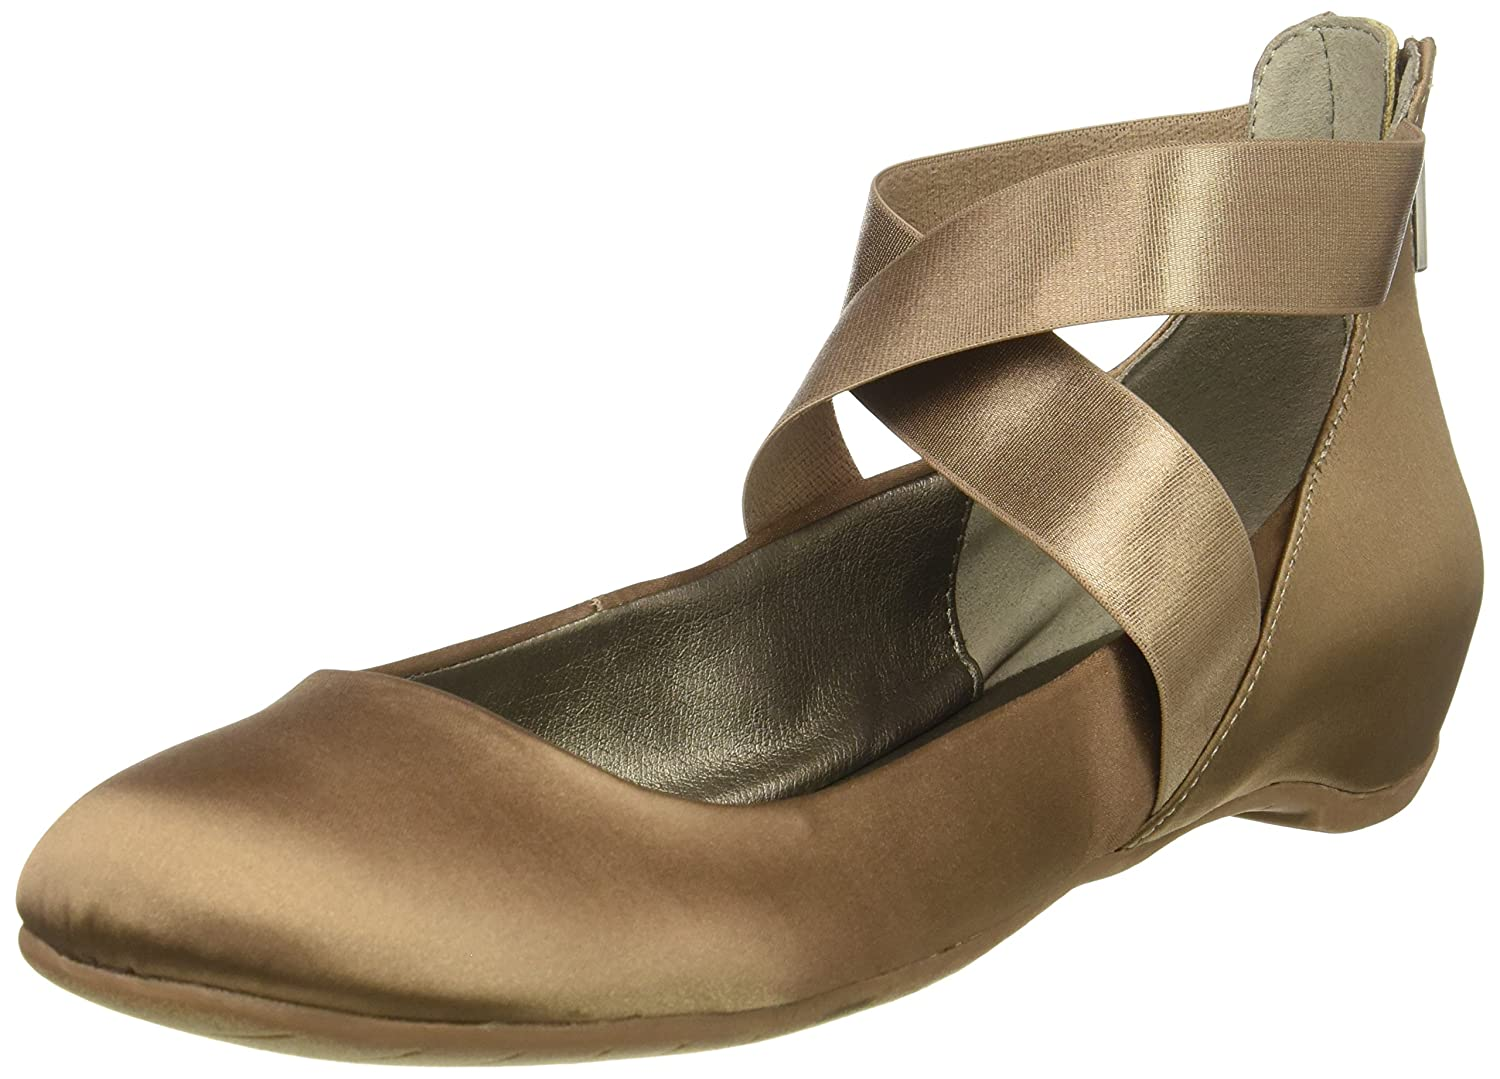 Kenneth Cole REACTION Women's Pro-Time Elastic Ankle Strap, Back Zip-Satin Ballet Flat B06WGS4LNC 5 B(M) US|Mink